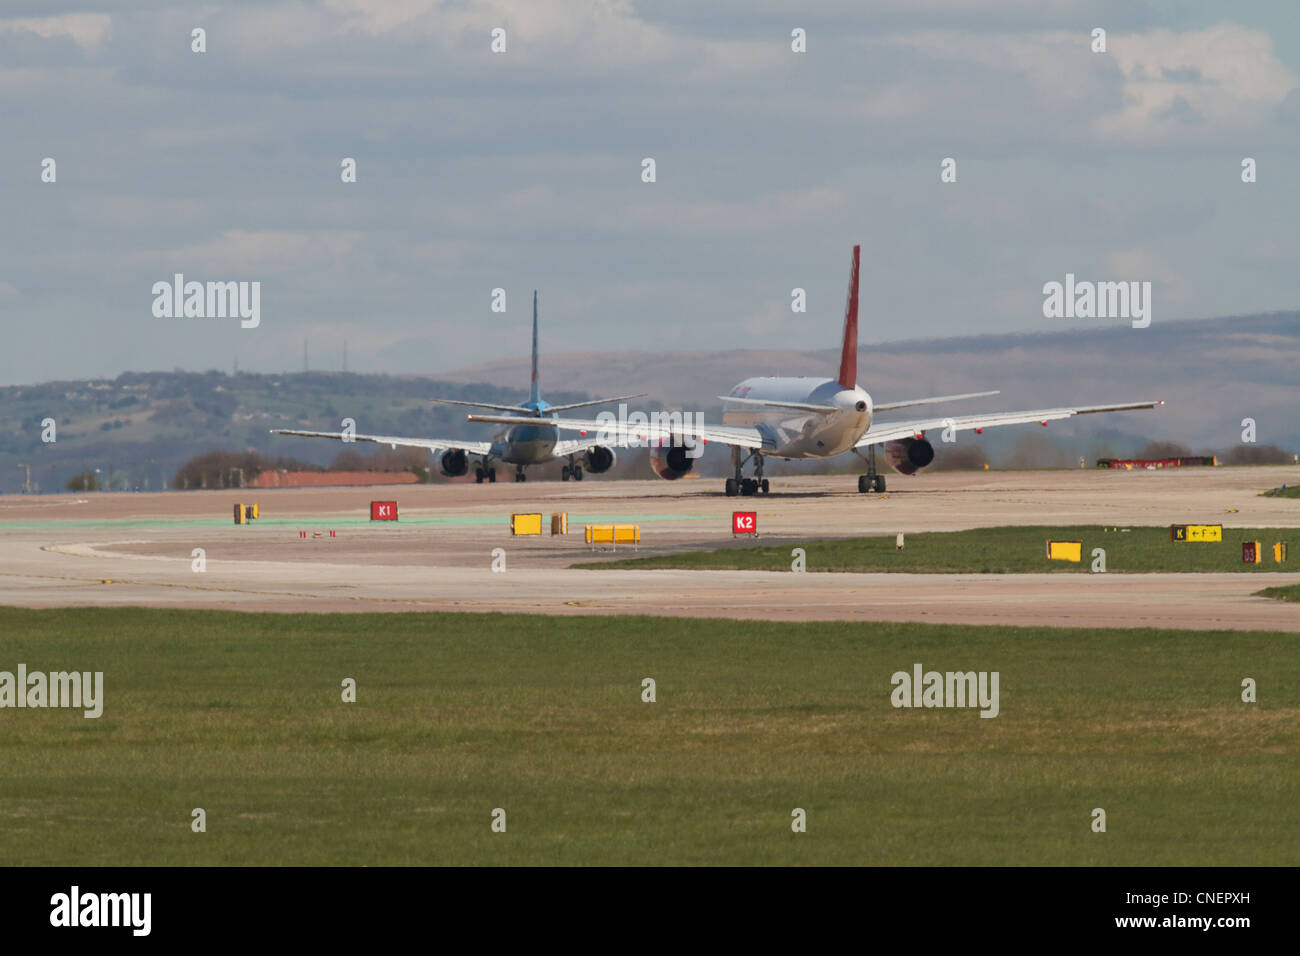 two jet airliners taxiing to the runway at Manchester airport - Stock Image